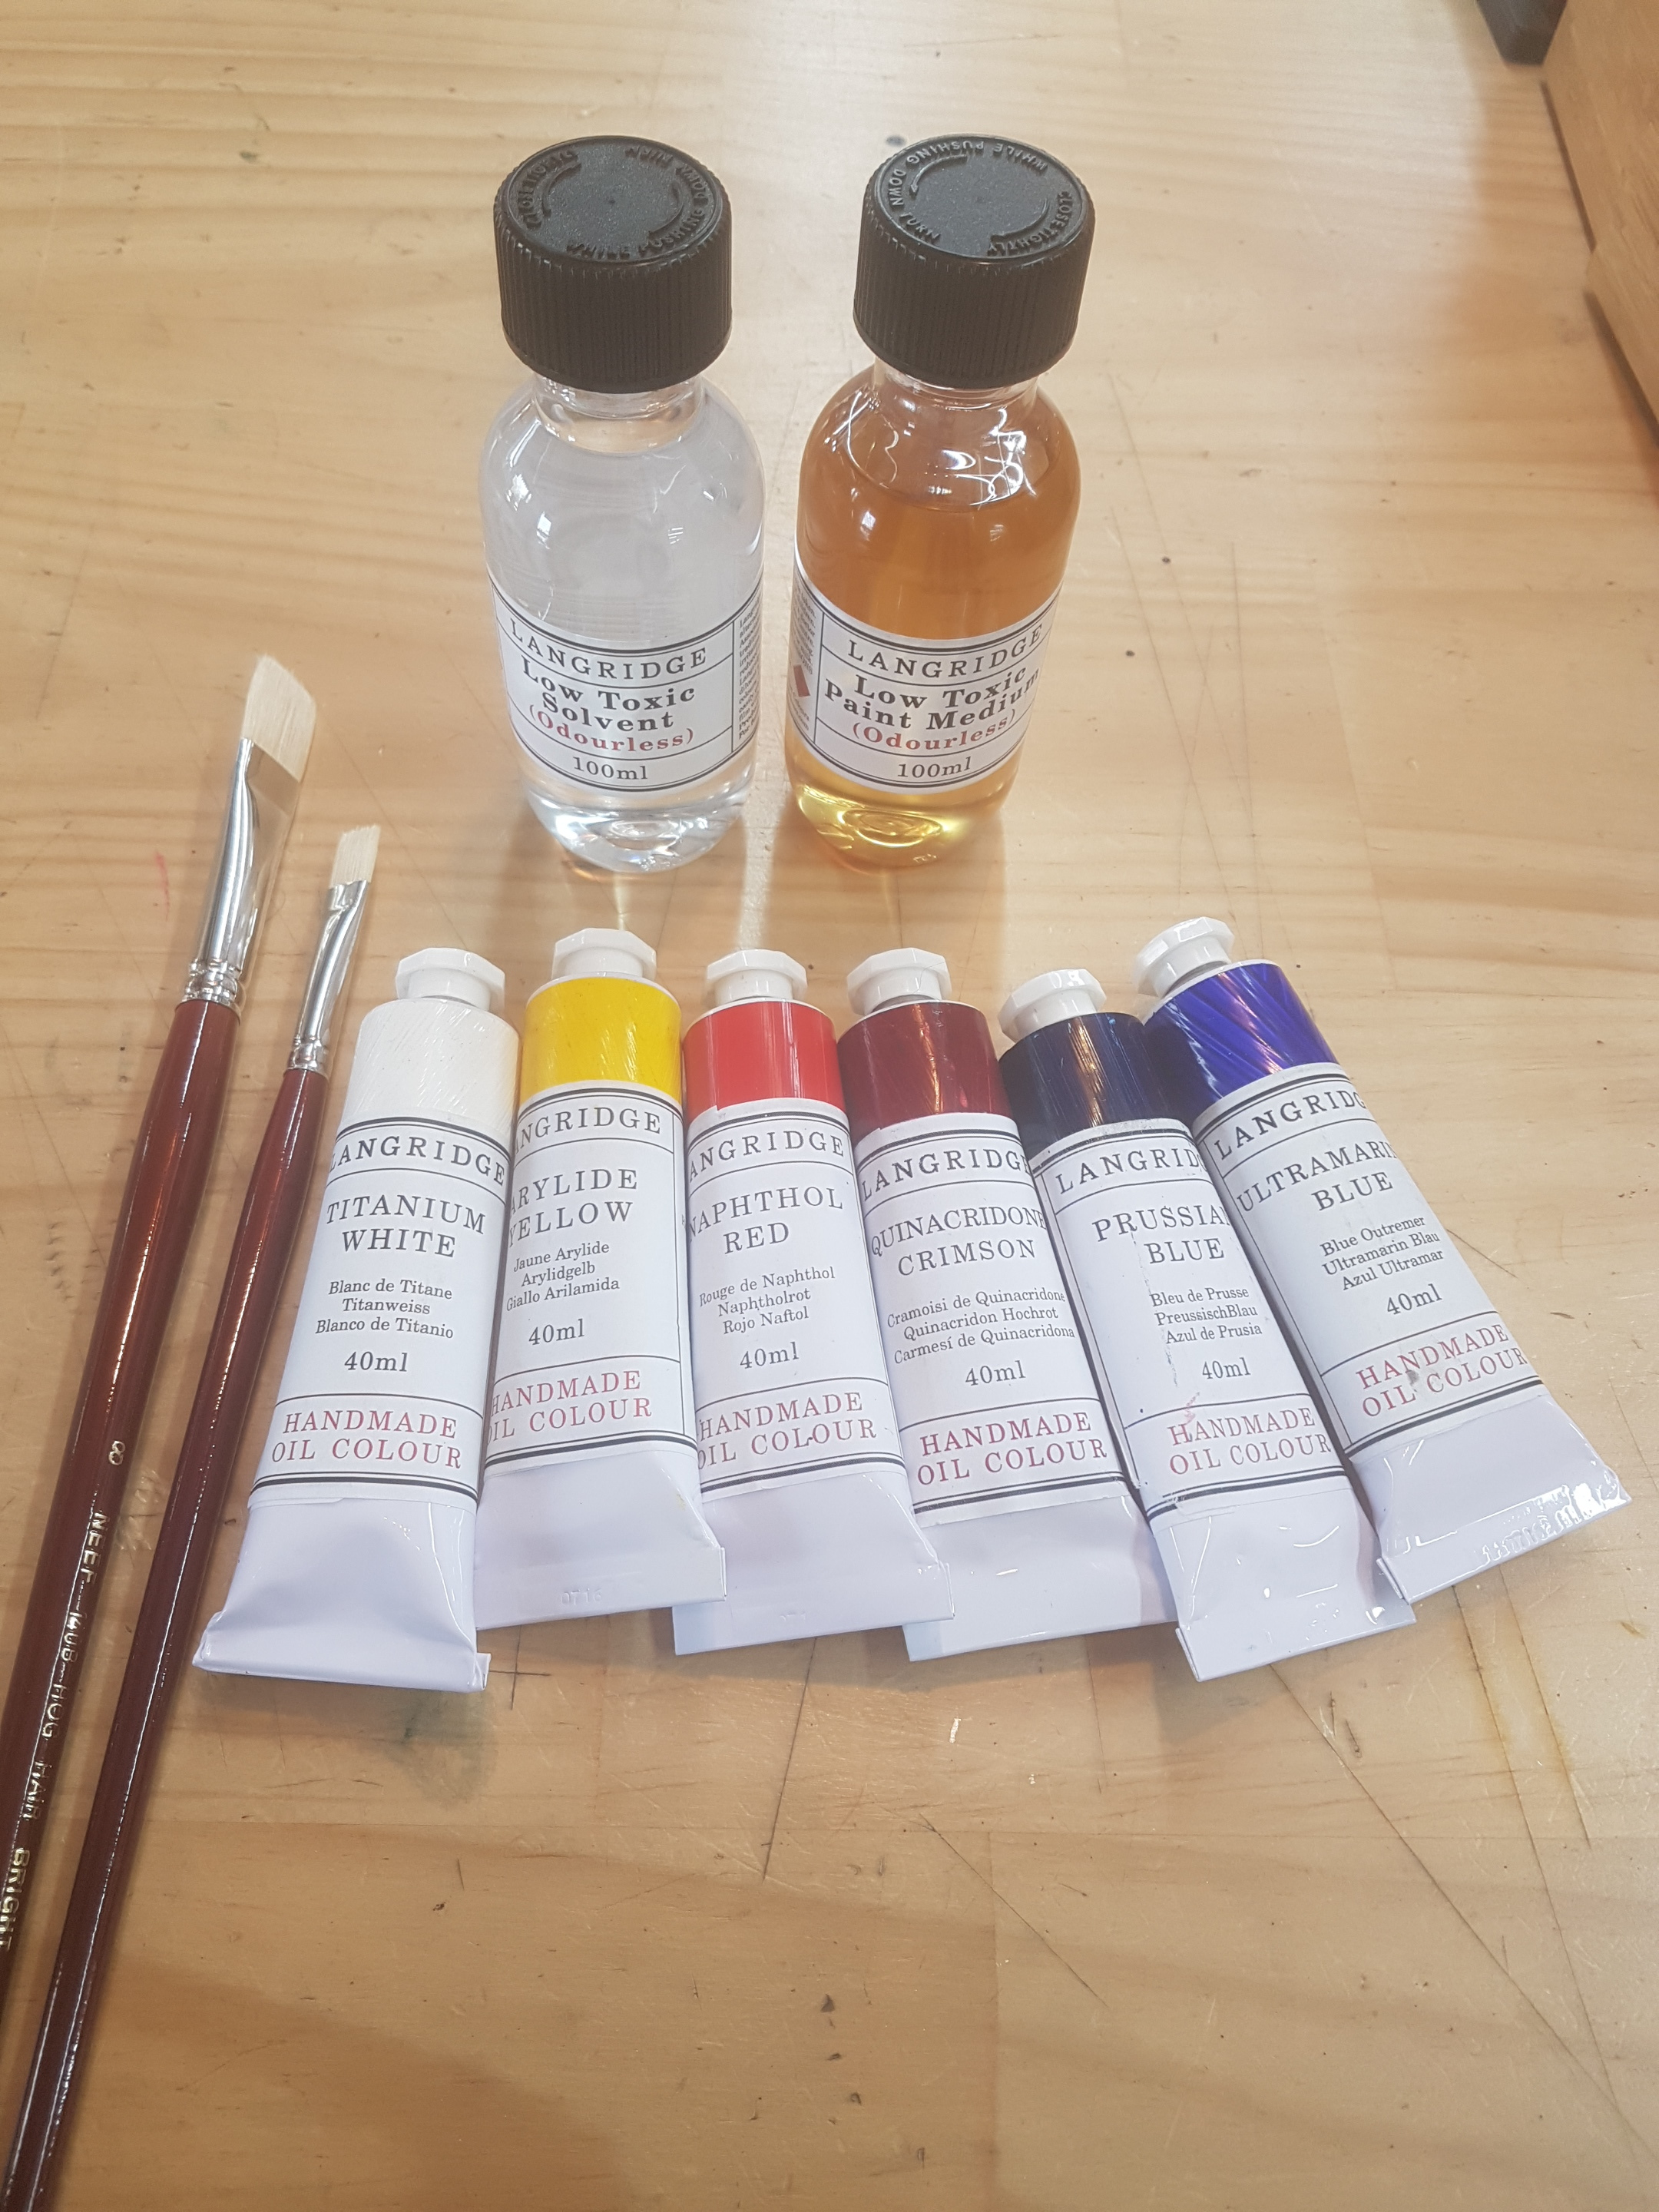 Basic Kit suggestion for Beginner Oil Painters